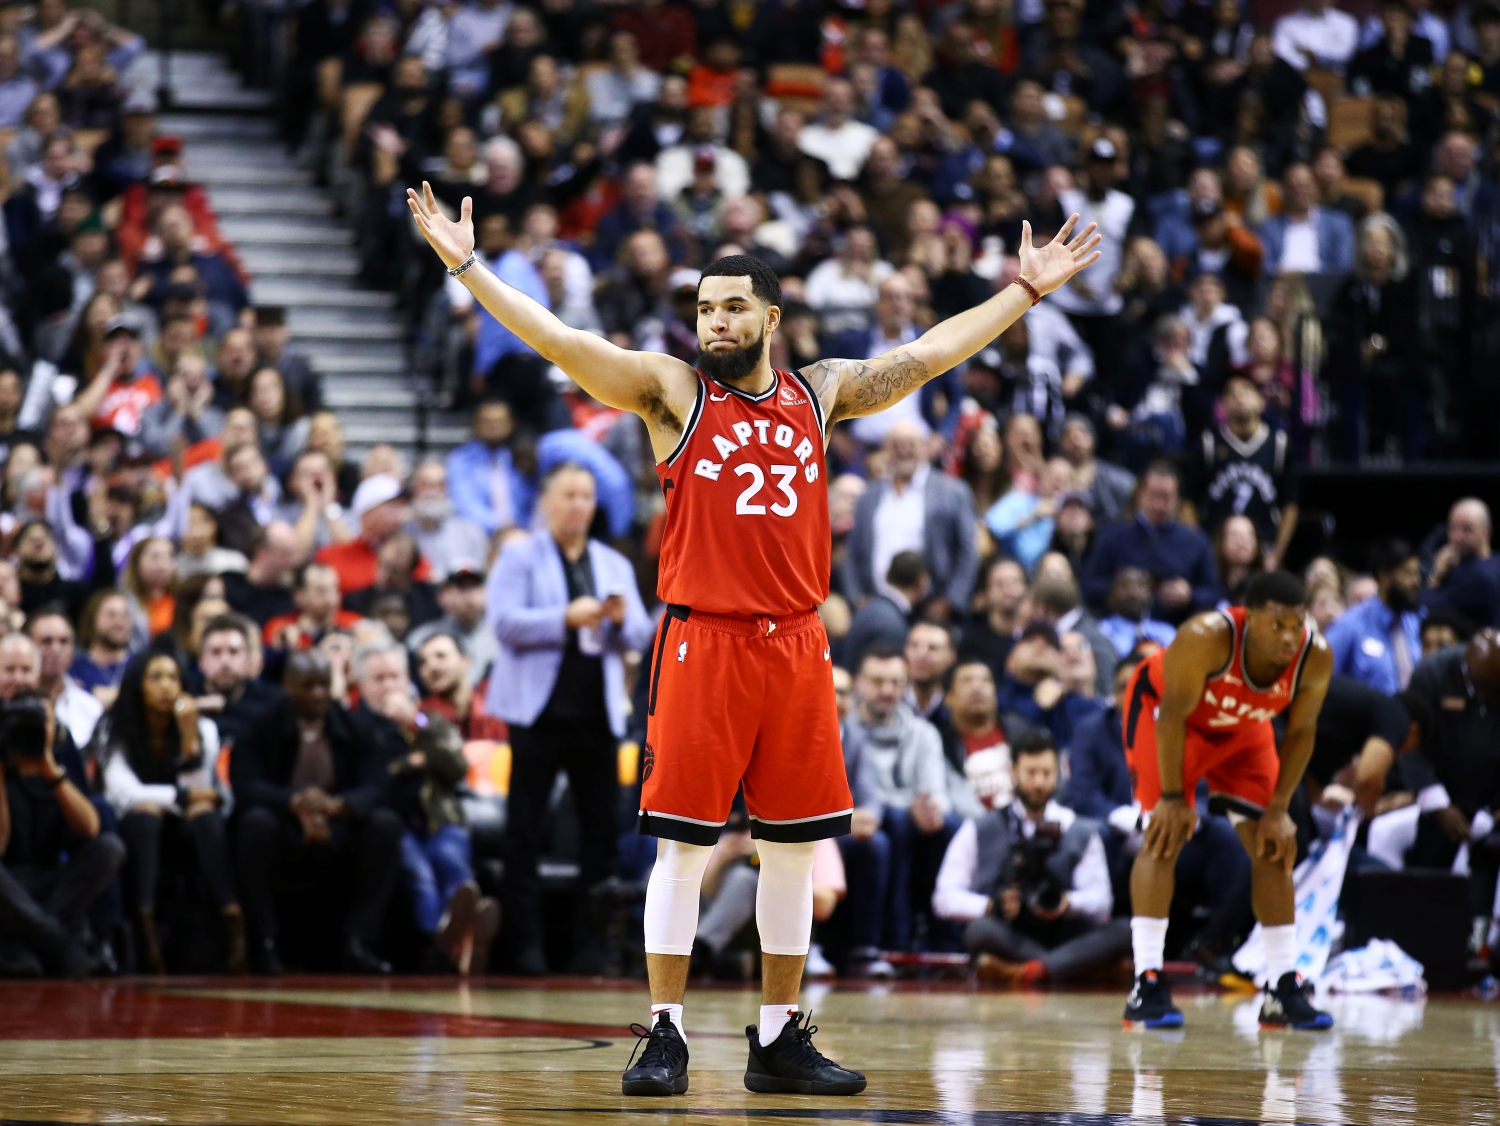 Fred VanVleet etches his name in NBA history books by agreeing to sign an $85 million contract extension with the Toronto Raptors.